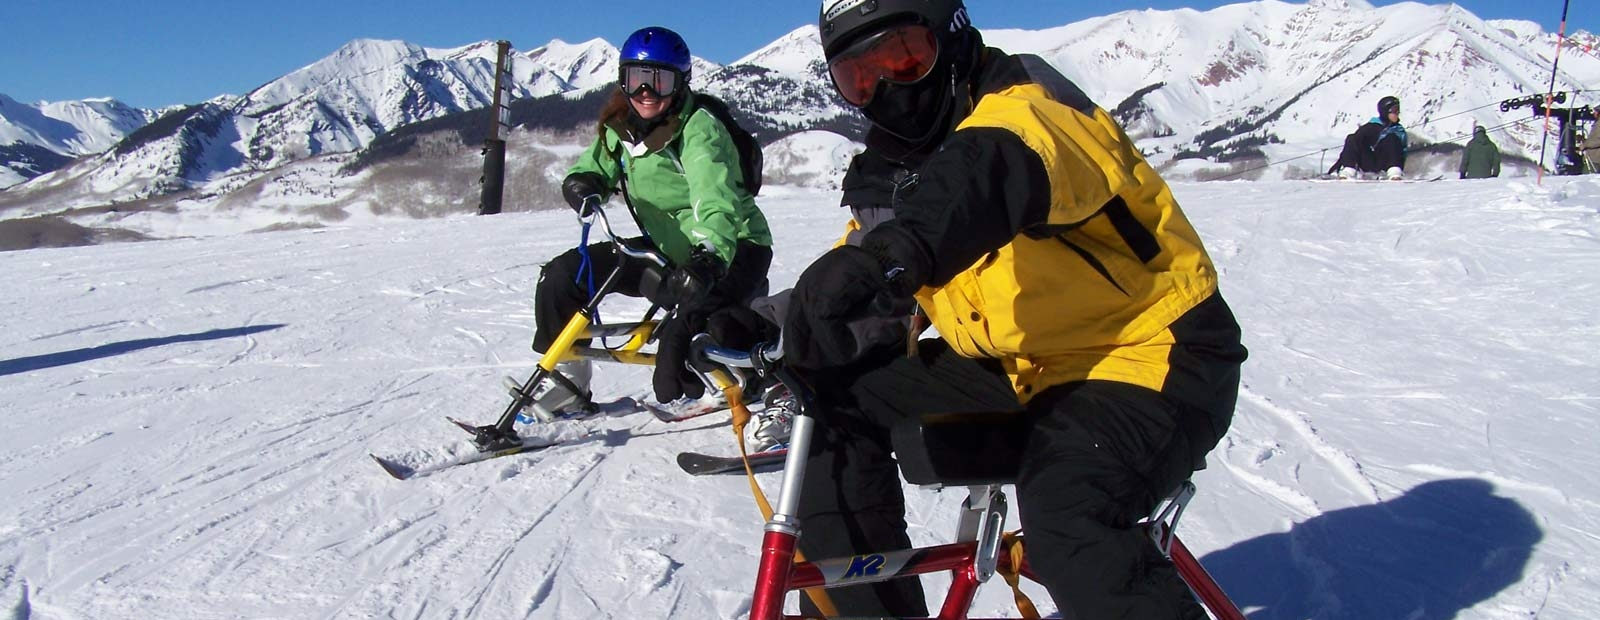 Two people on ski bikes going down a snow-covered slope